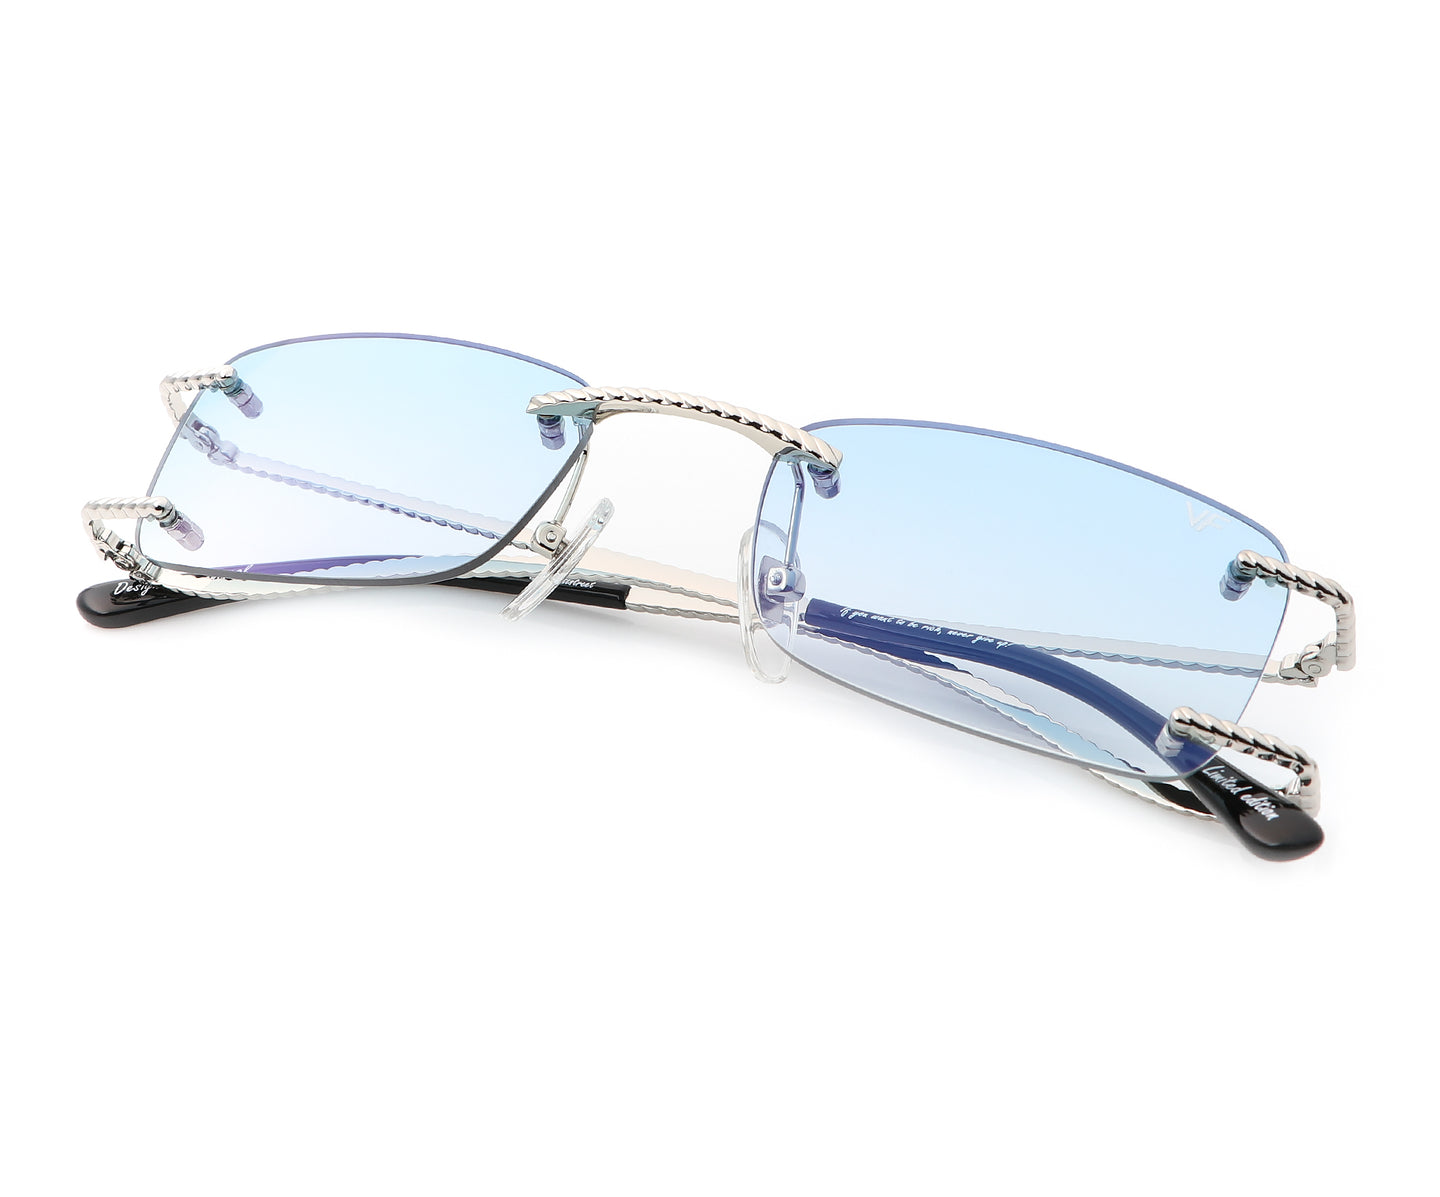 VF Wall Street Drill Mount 24KT White Gold (Pastel Blue), VF Drill Mount , glasses frames, eyeglasses online, eyeglass frames, mens glasses, womens glasses, buy glasses online, designer eyeglasses, vintage sunglasses, retro sunglasses, vintage glasses, sunglass, eyeglass, glasses, lens, vintage frames company, vf